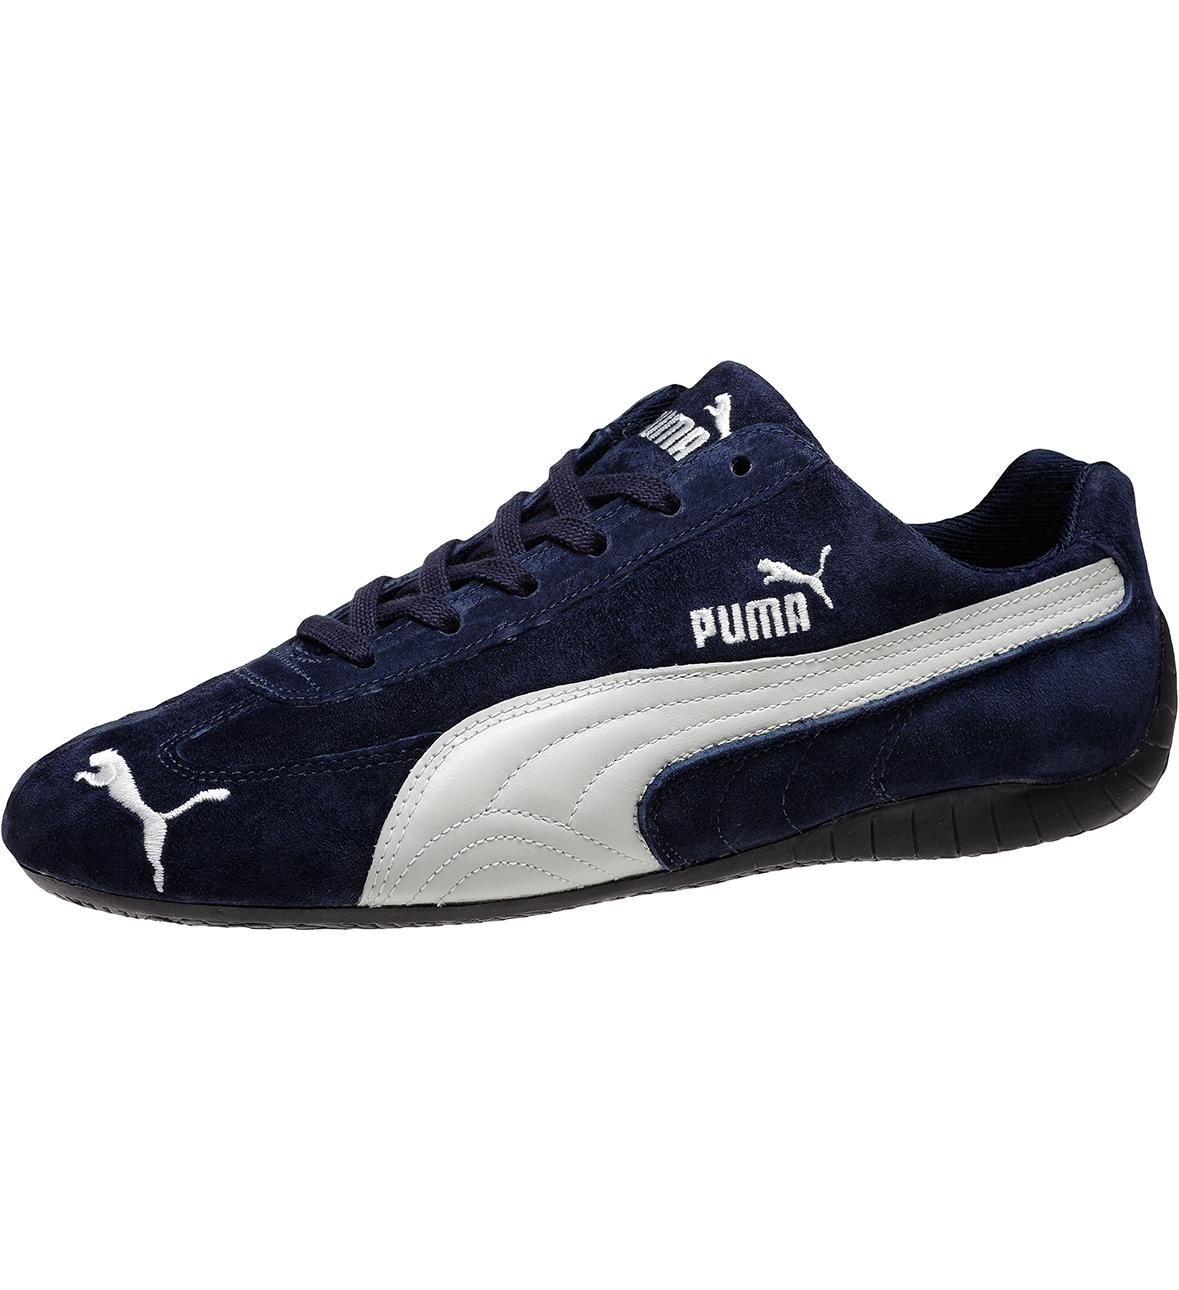 bc62fba51c5d4 puma shoes pictures | Out with the old and in with the new | Puma ...